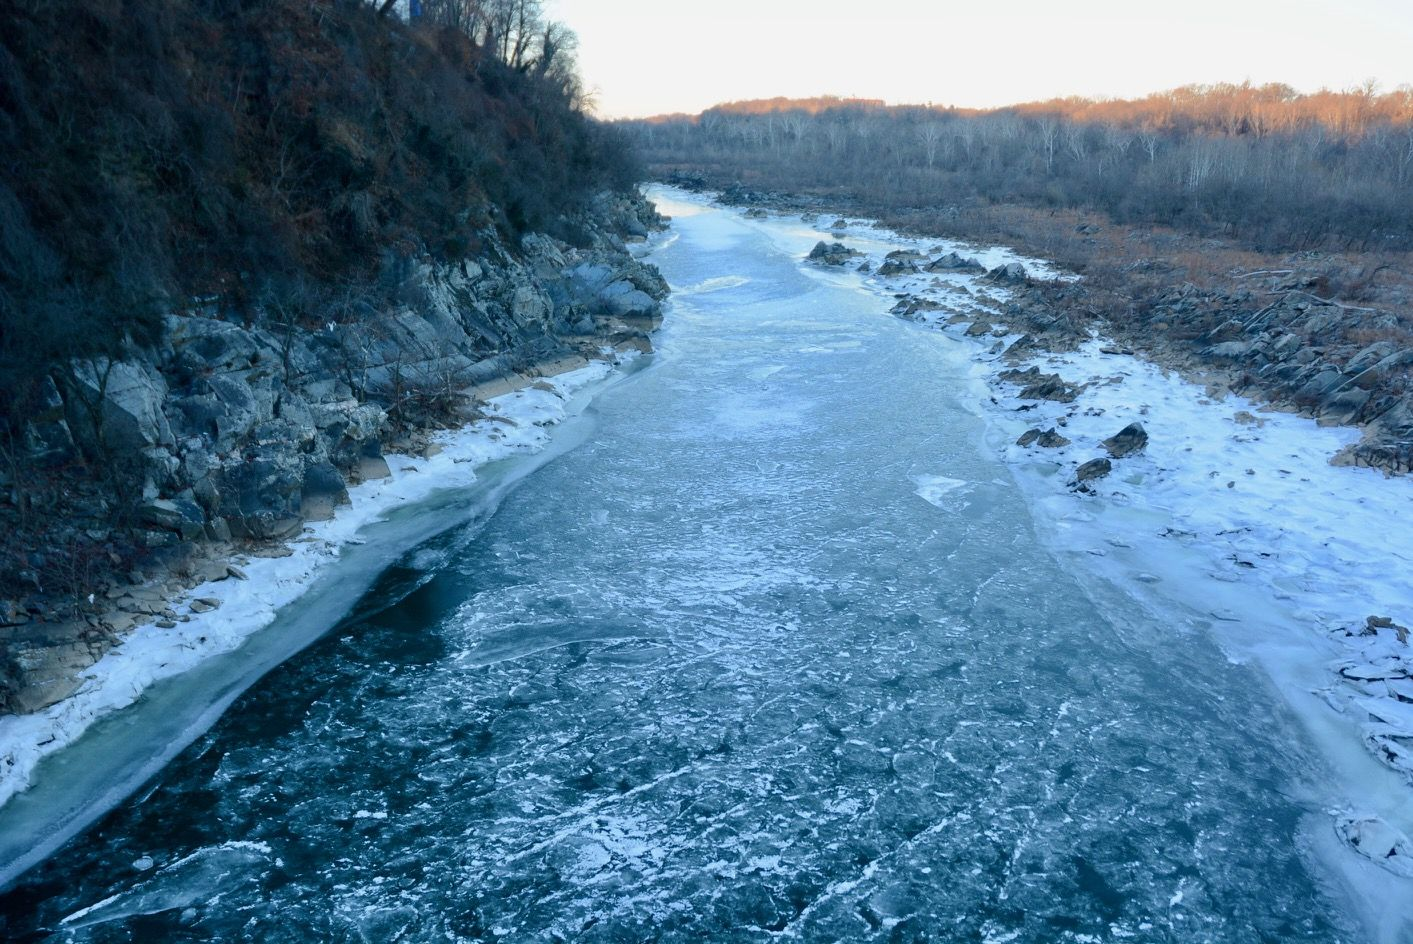 The Potomac River freezes over in early January, 2018 during a prolonged cold snap. (WTOP/Dave Dildine)